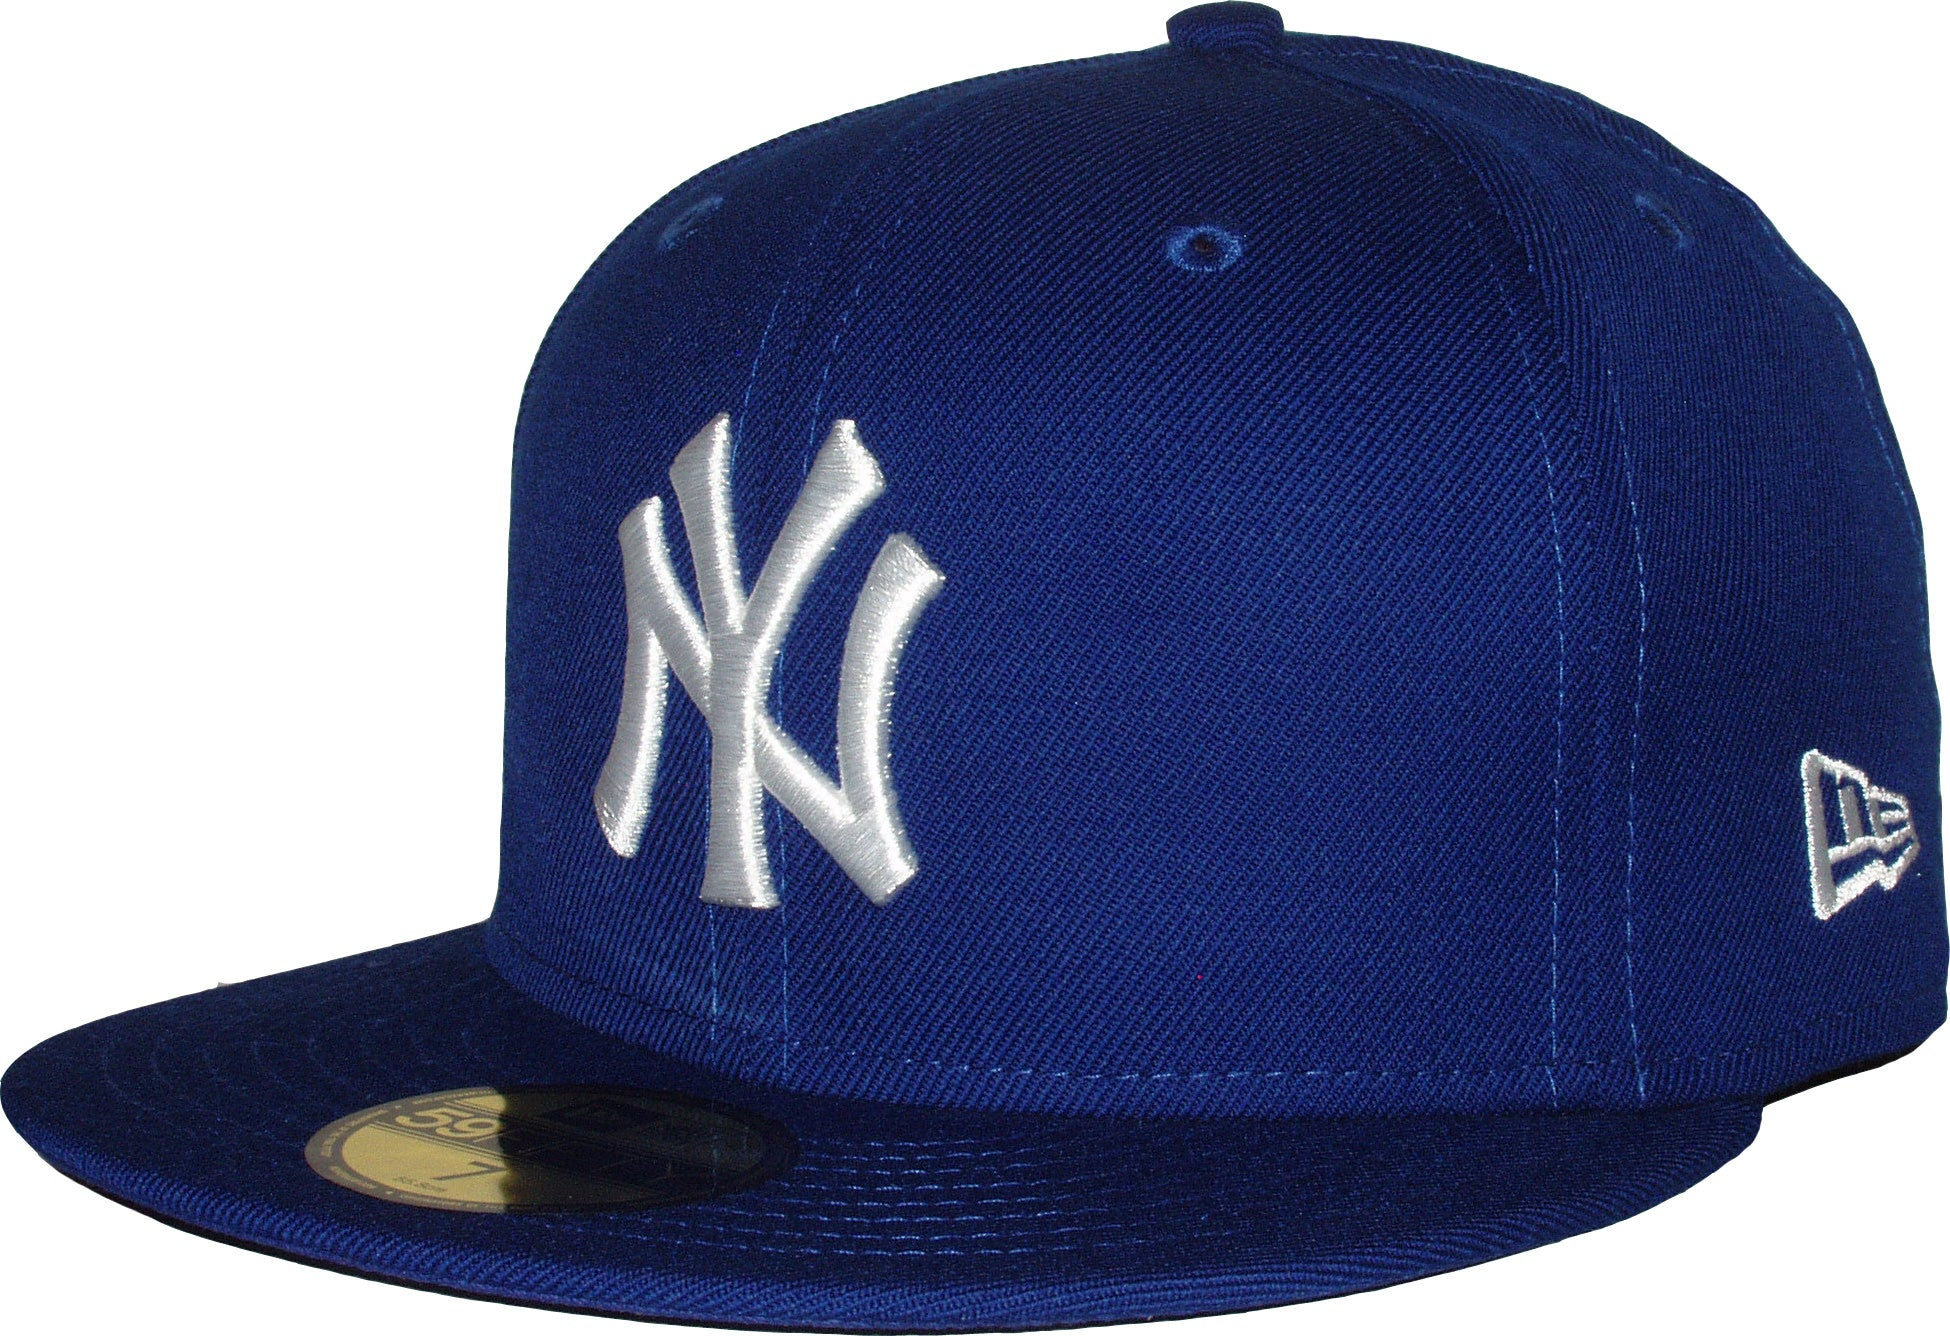 4ad4b9be880 NY Yankees New Era 5950 MLB Royal Blue White Baseball Cap + Gift Box ...